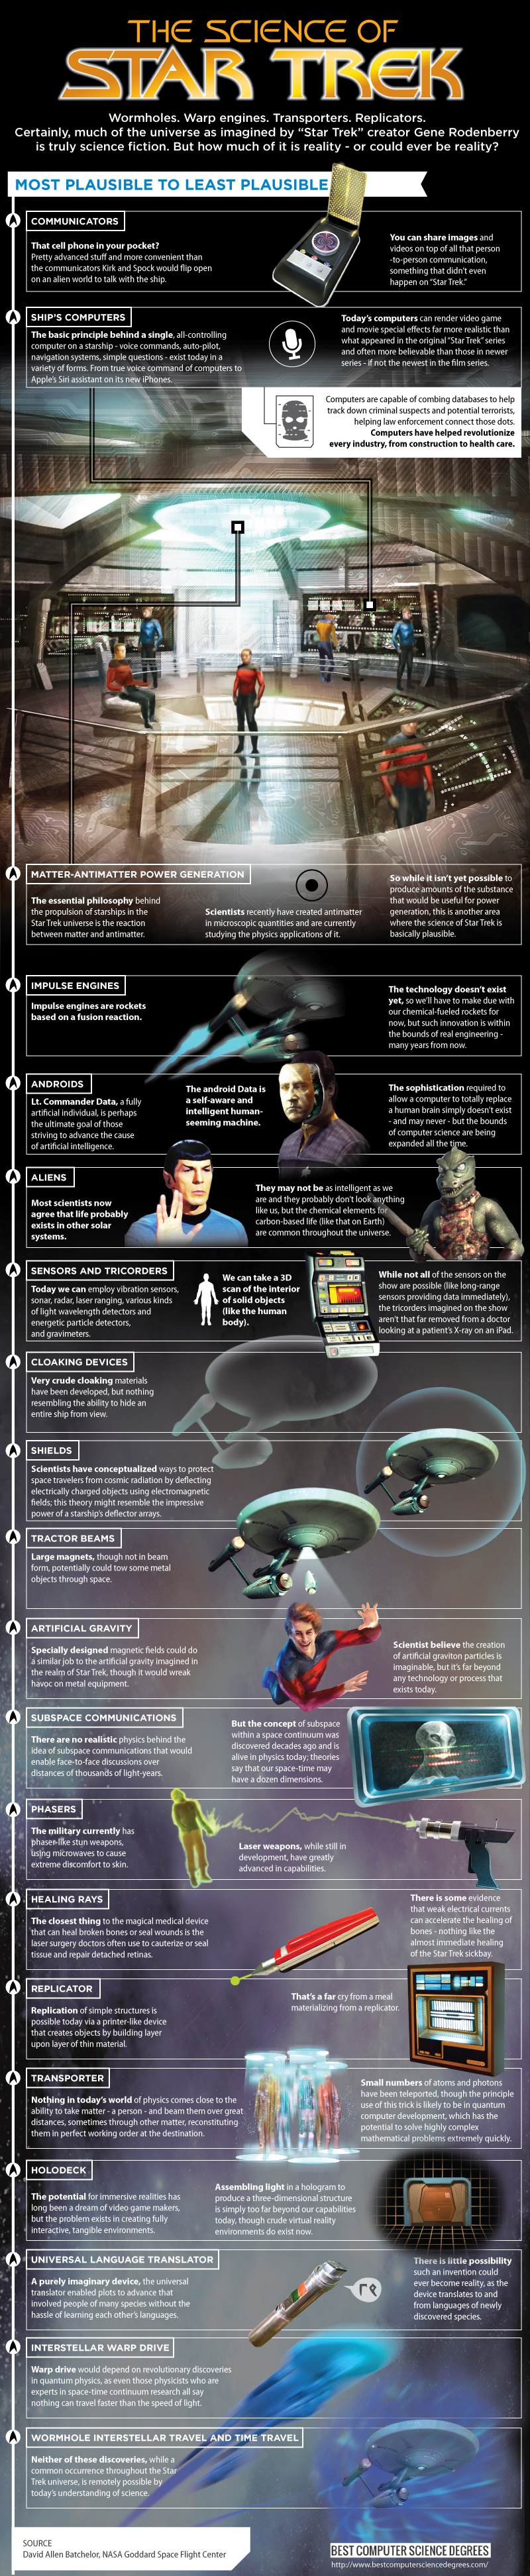 The Science of Star Trekk